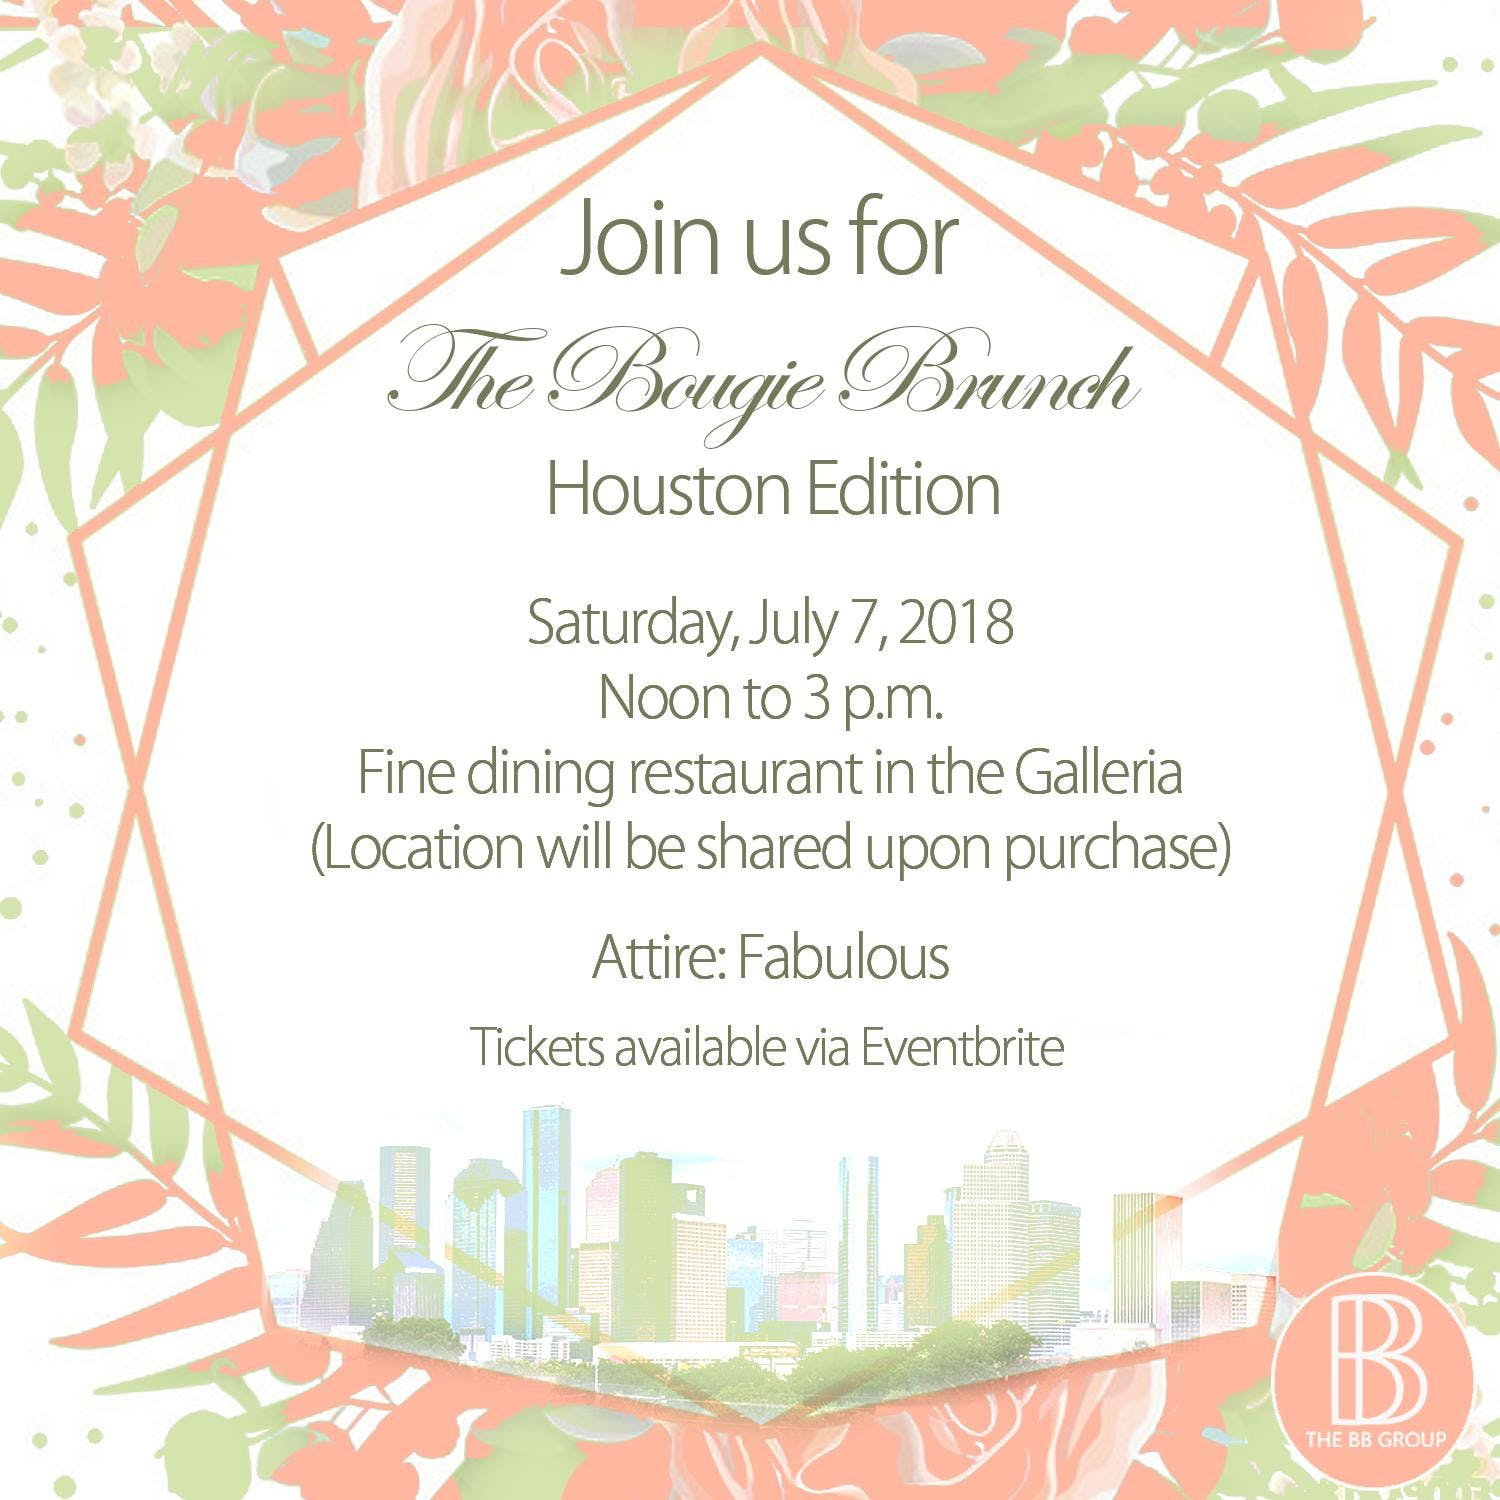 3041 houston events in Houston, Today and Upcoming houston events in ...